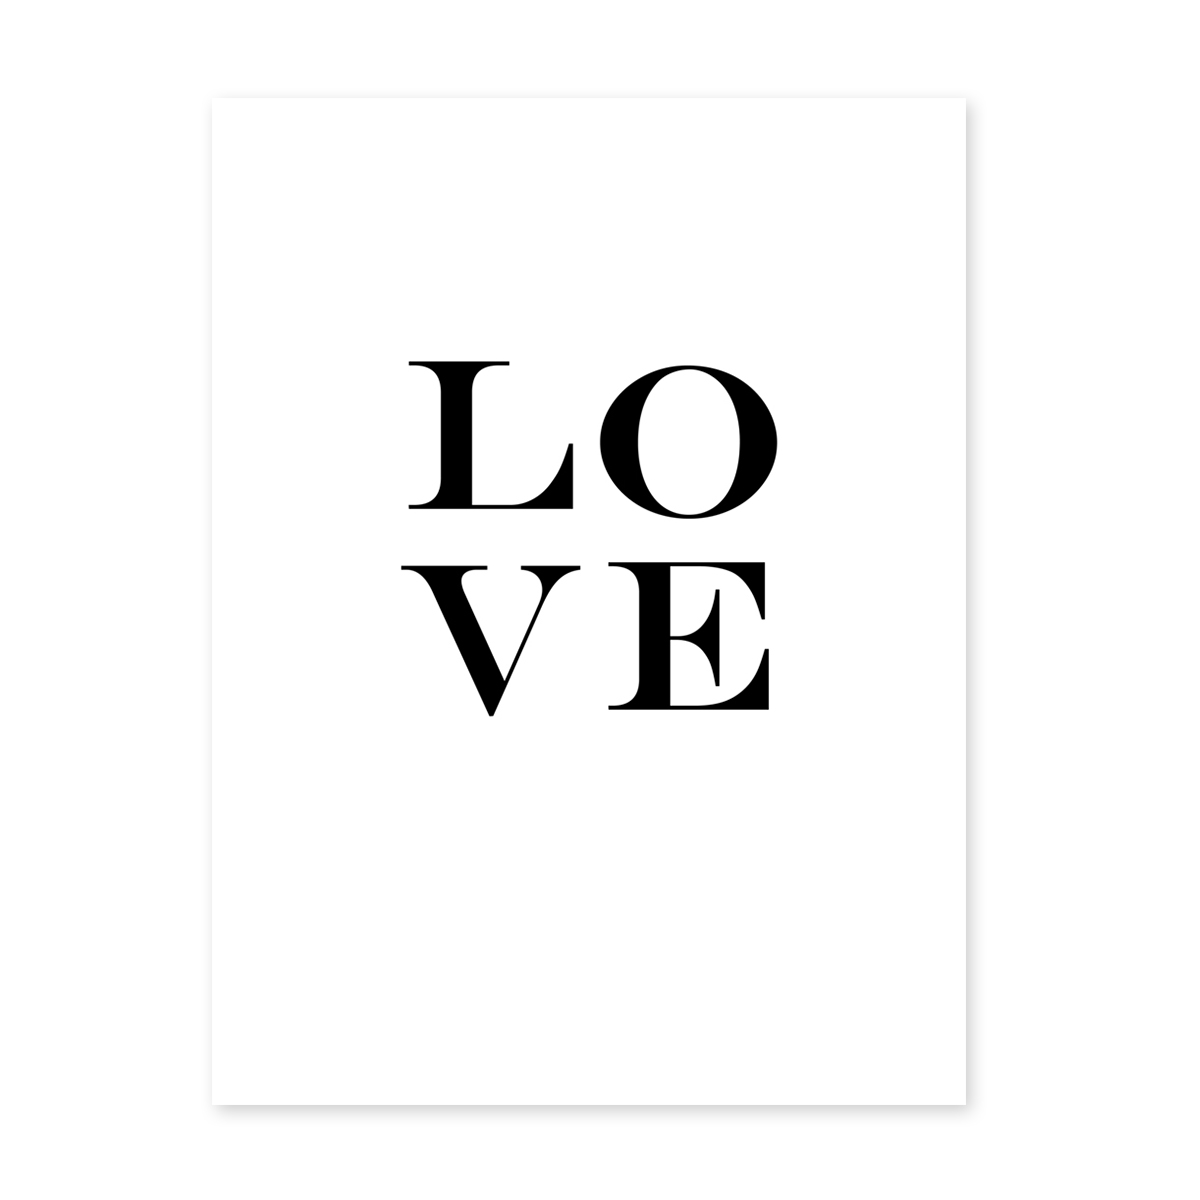 design poster 39 love letters 39 30x40 cm schwarz weiss motiv typographie liebe poster schwarz weiss. Black Bedroom Furniture Sets. Home Design Ideas